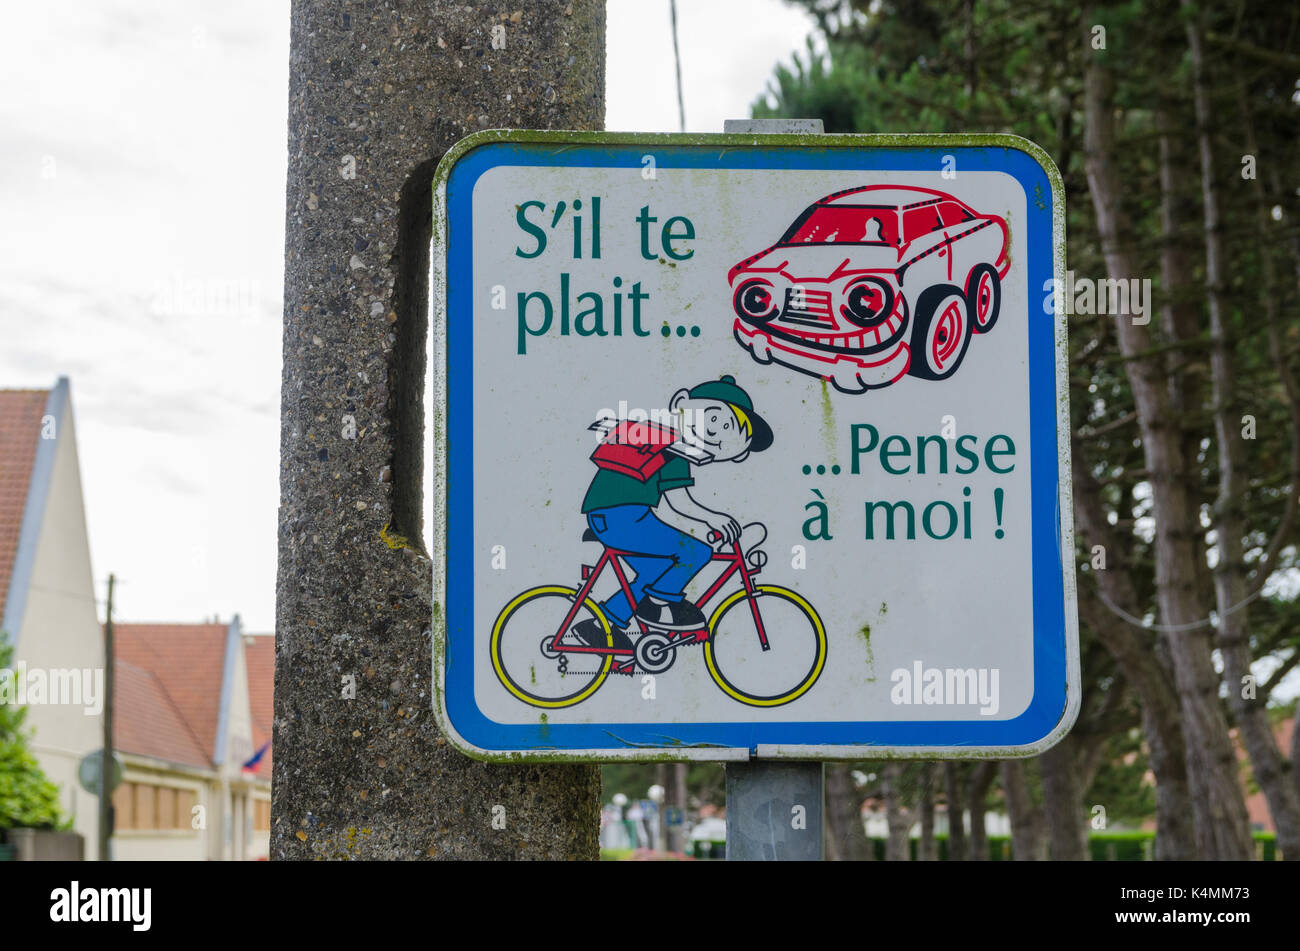 Sign asking motorists to take care with children on bicycles in Hardinghen, France - Stock Image